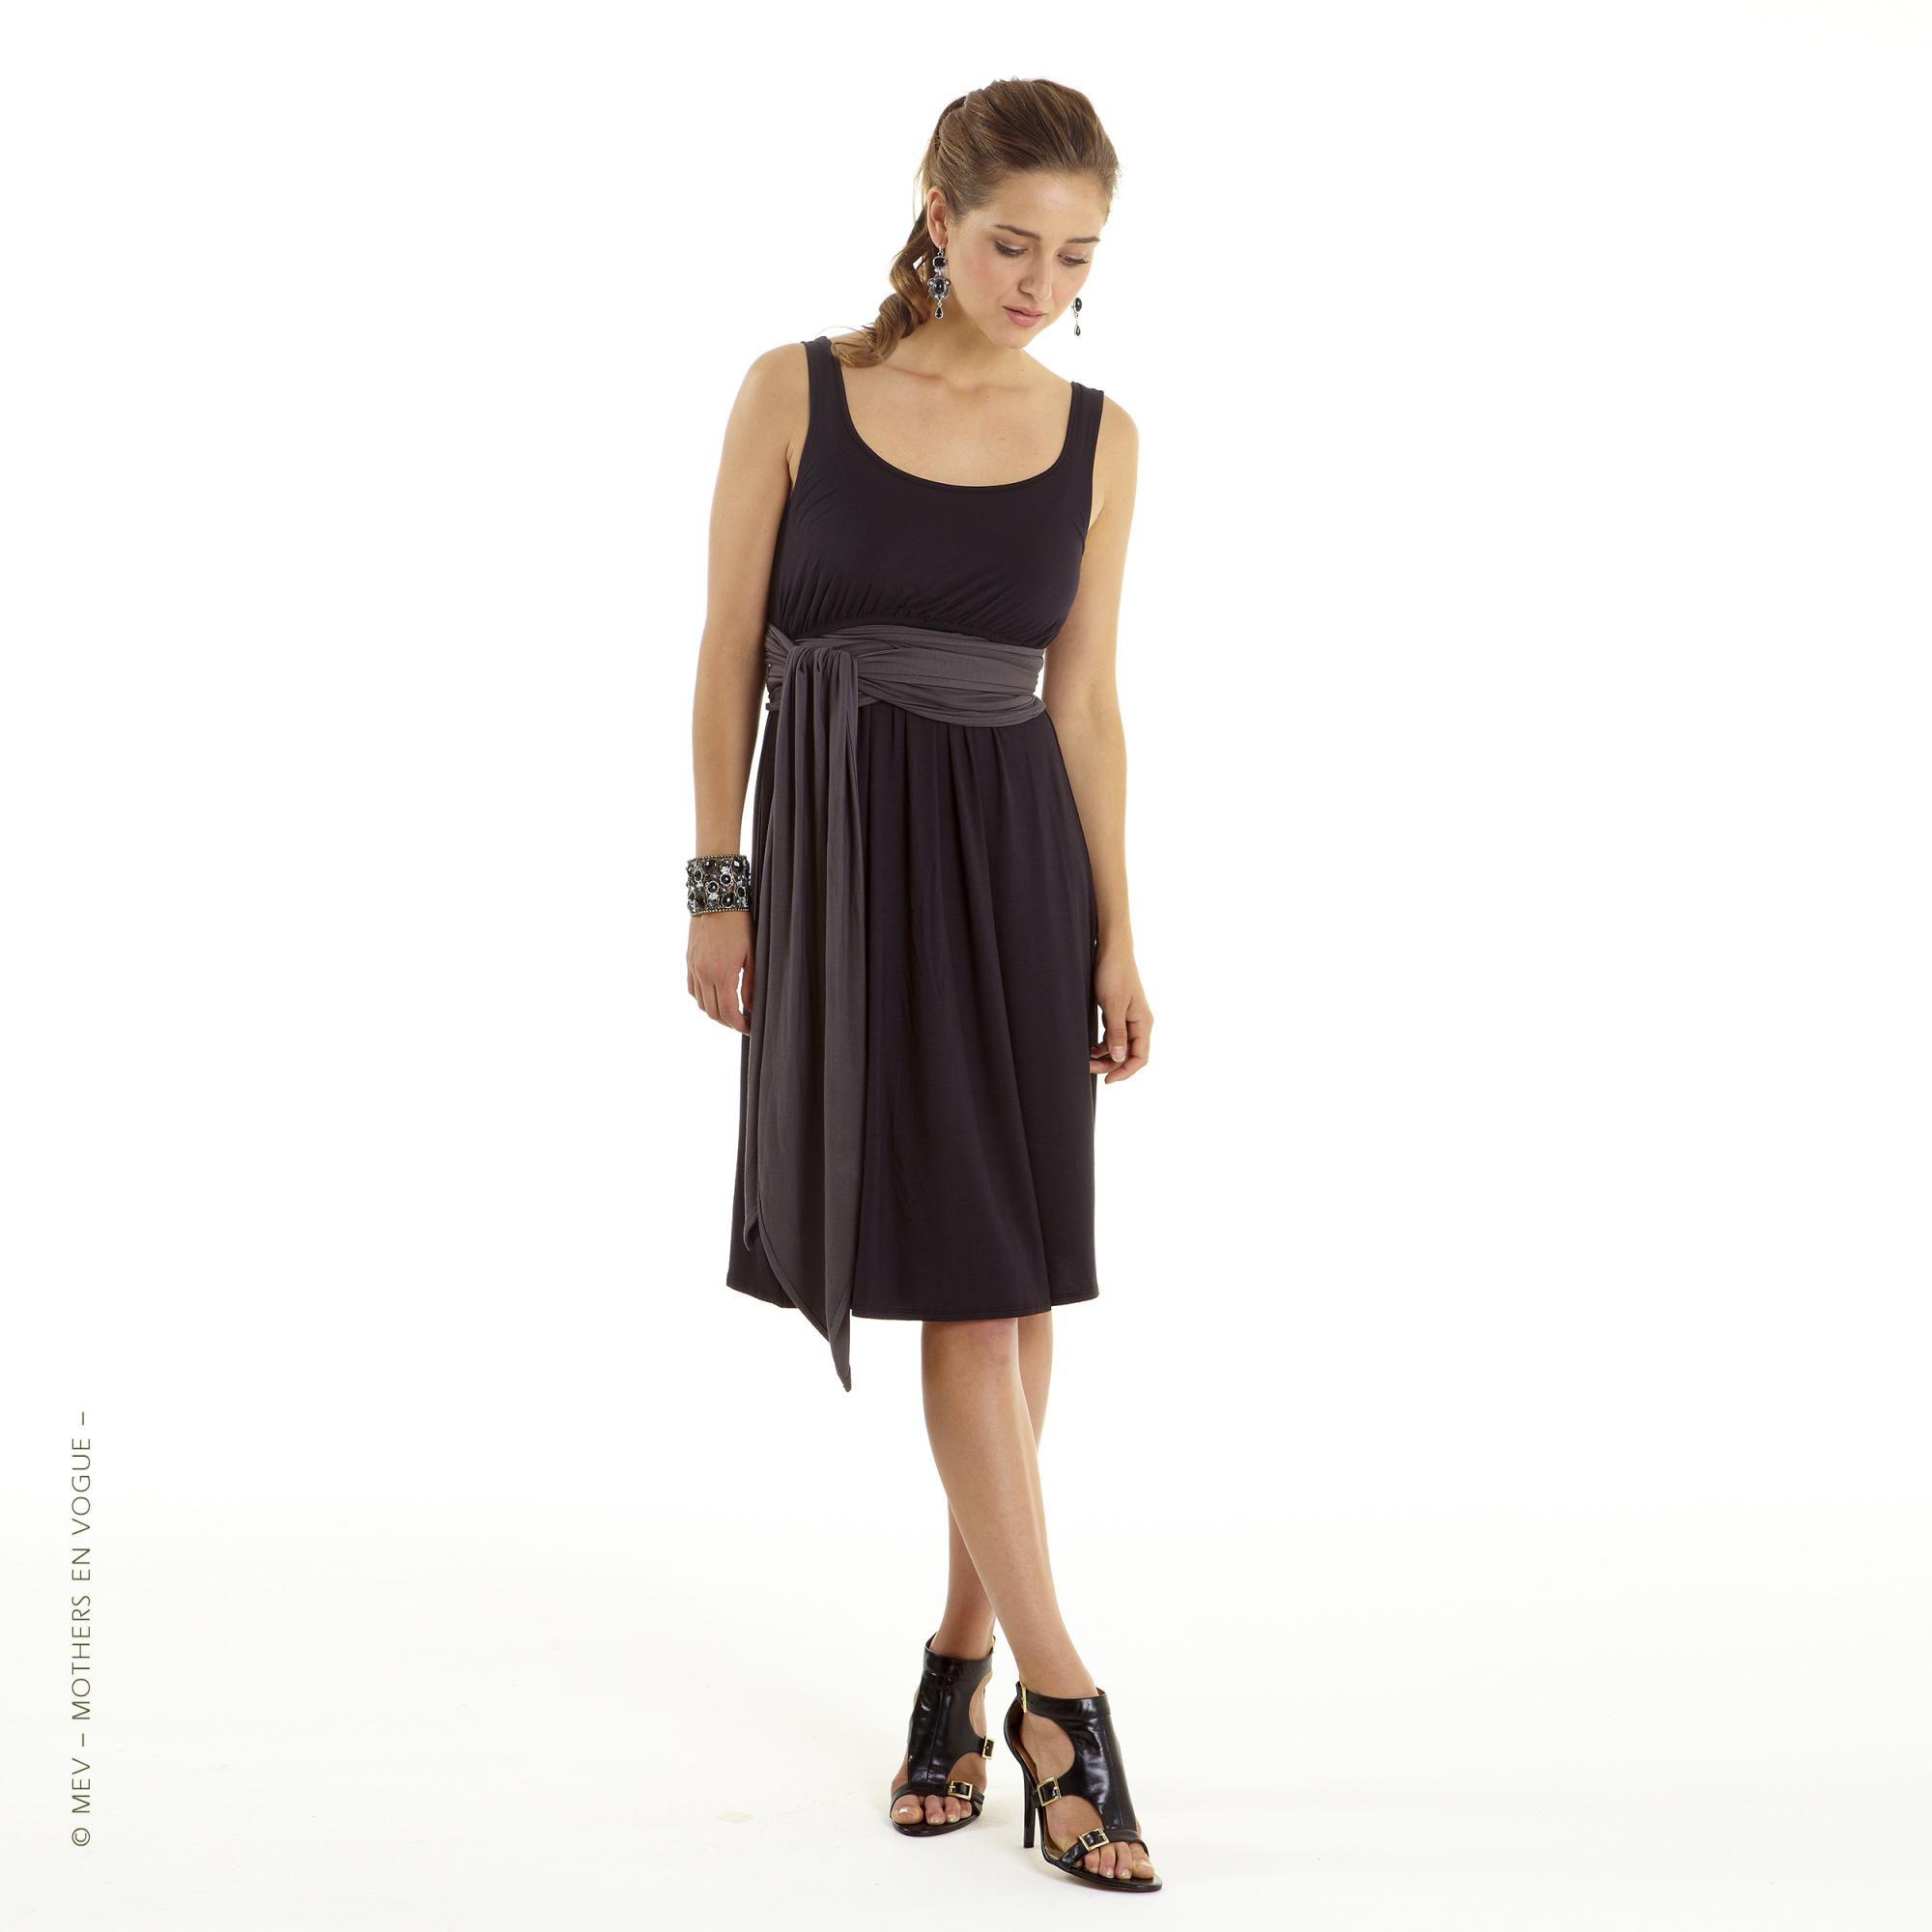 mothers-en-vogue-infinity-wrap-nursing-dress-4.jpg